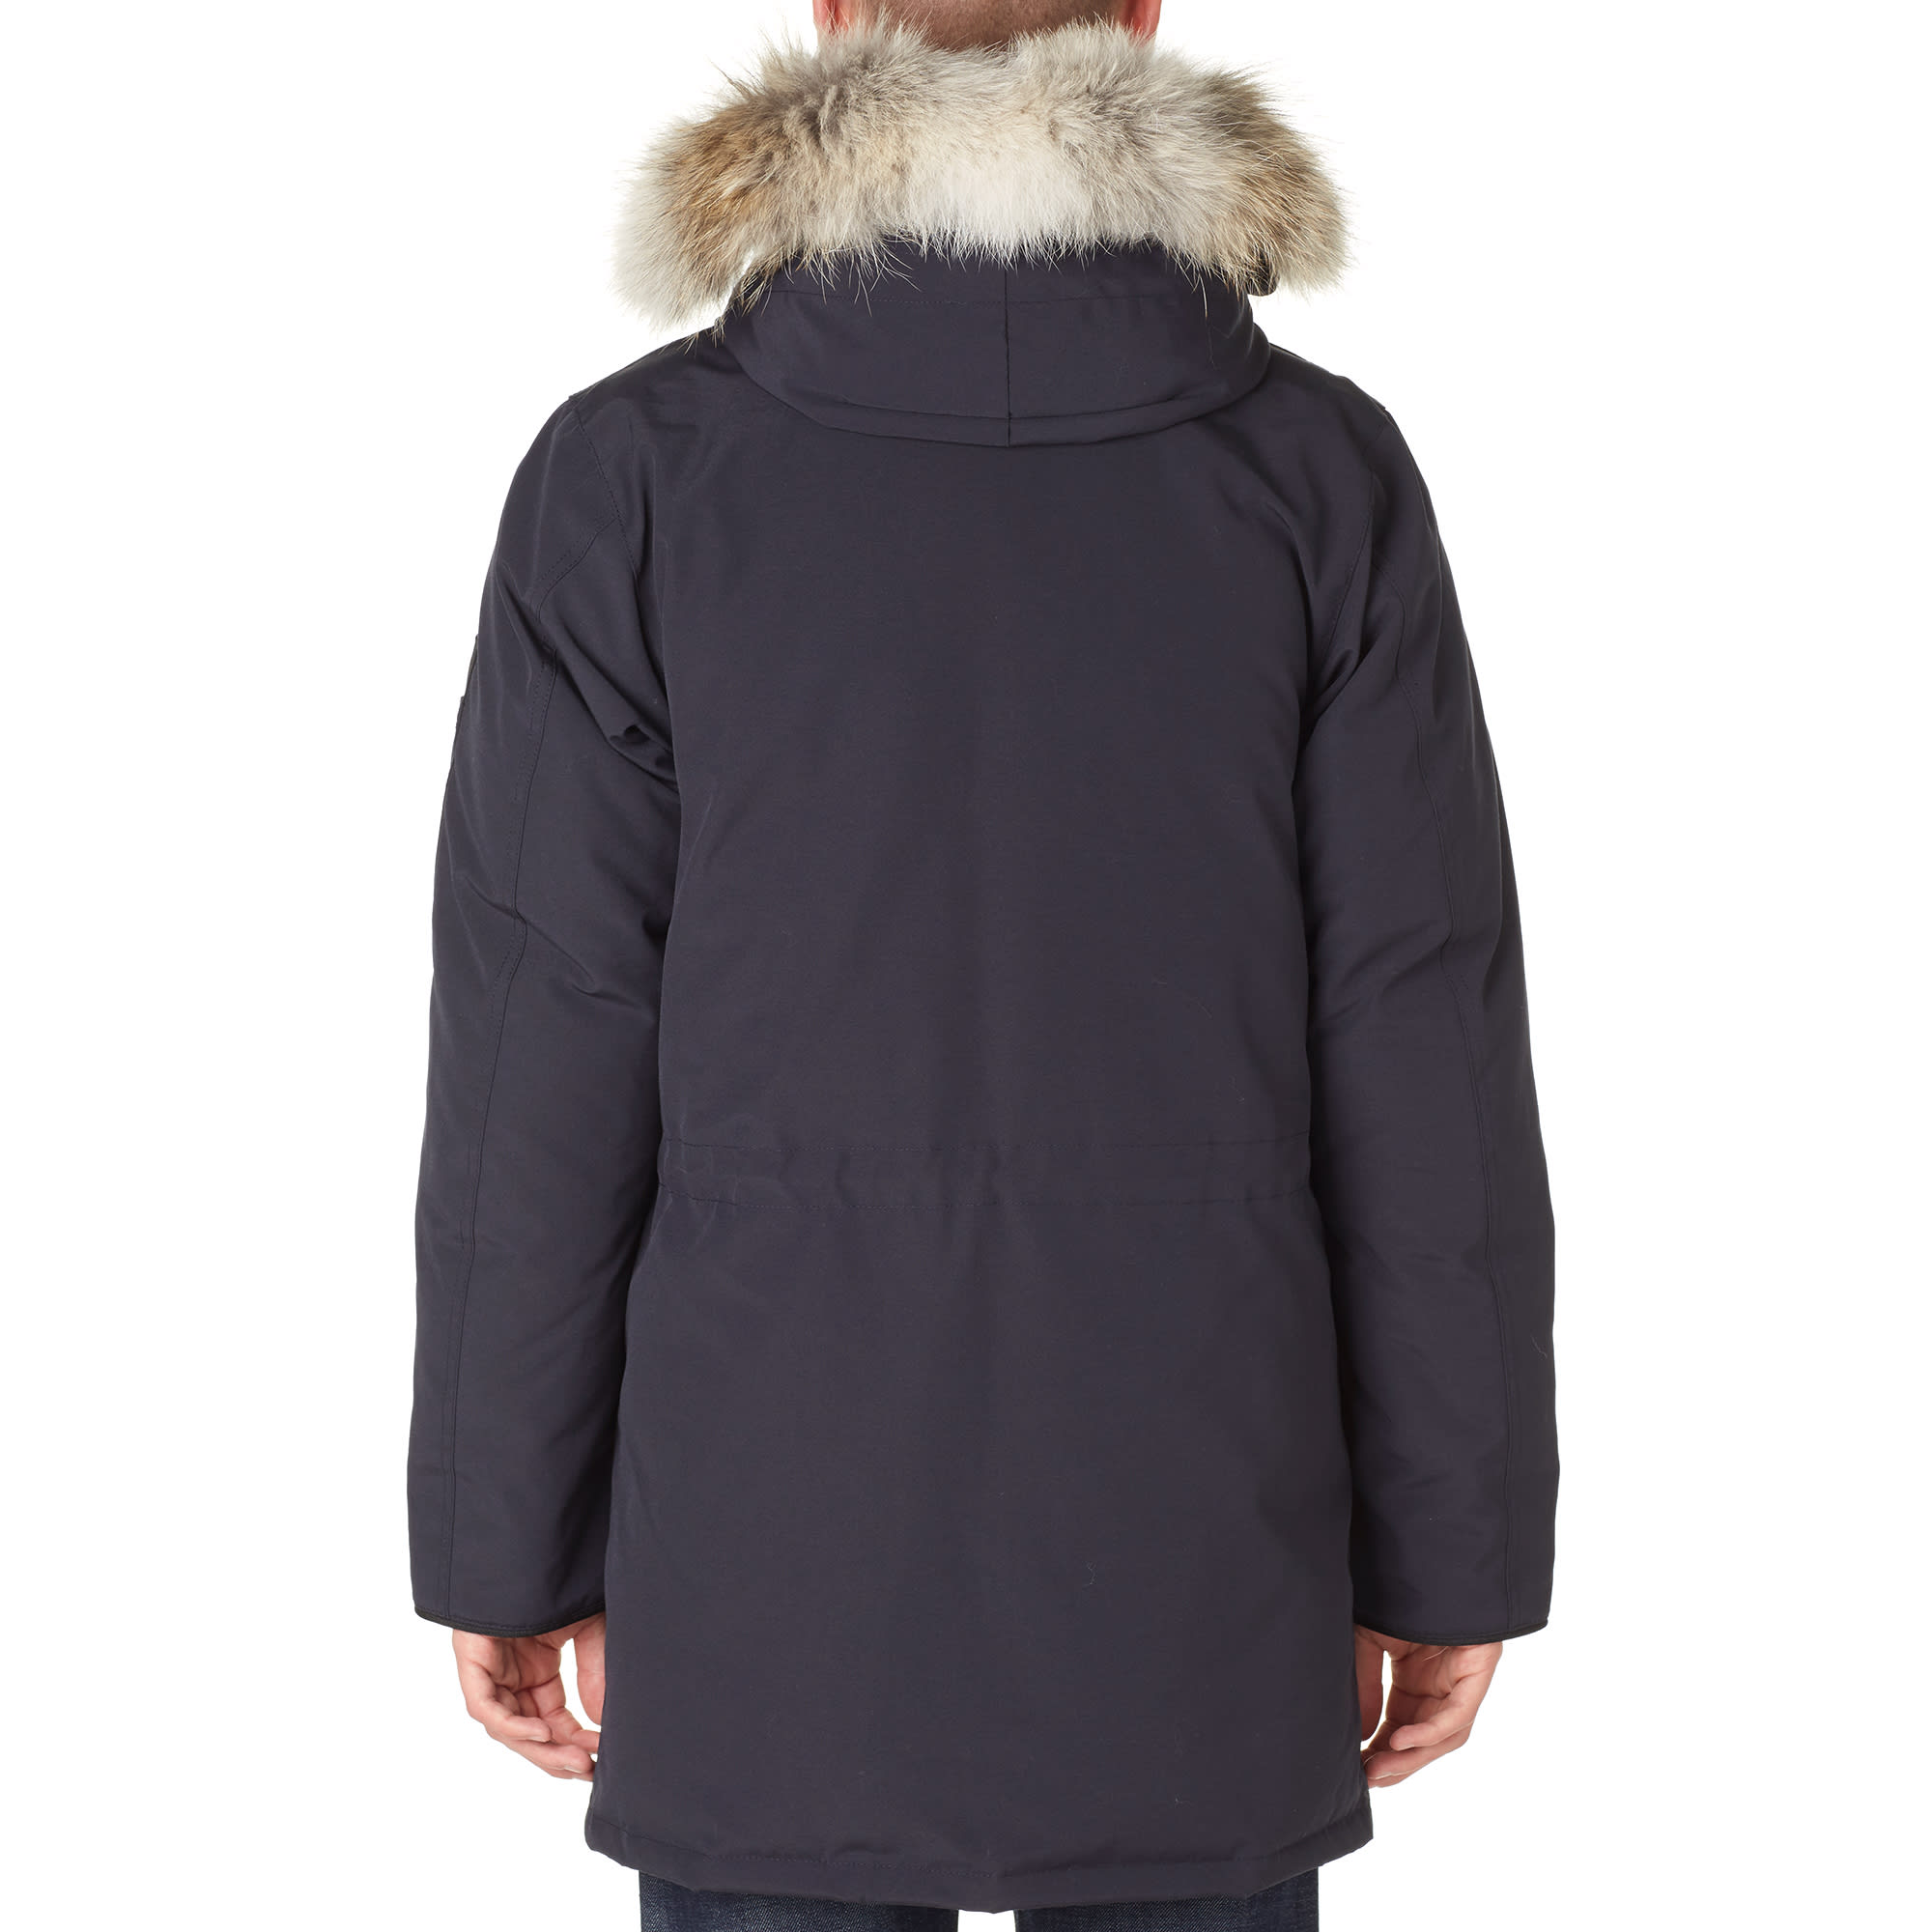 Canada Goose hats online discounts - 100% Satisfaction Holt Renfrew Canada Goose Chilliwack Shopping Mall